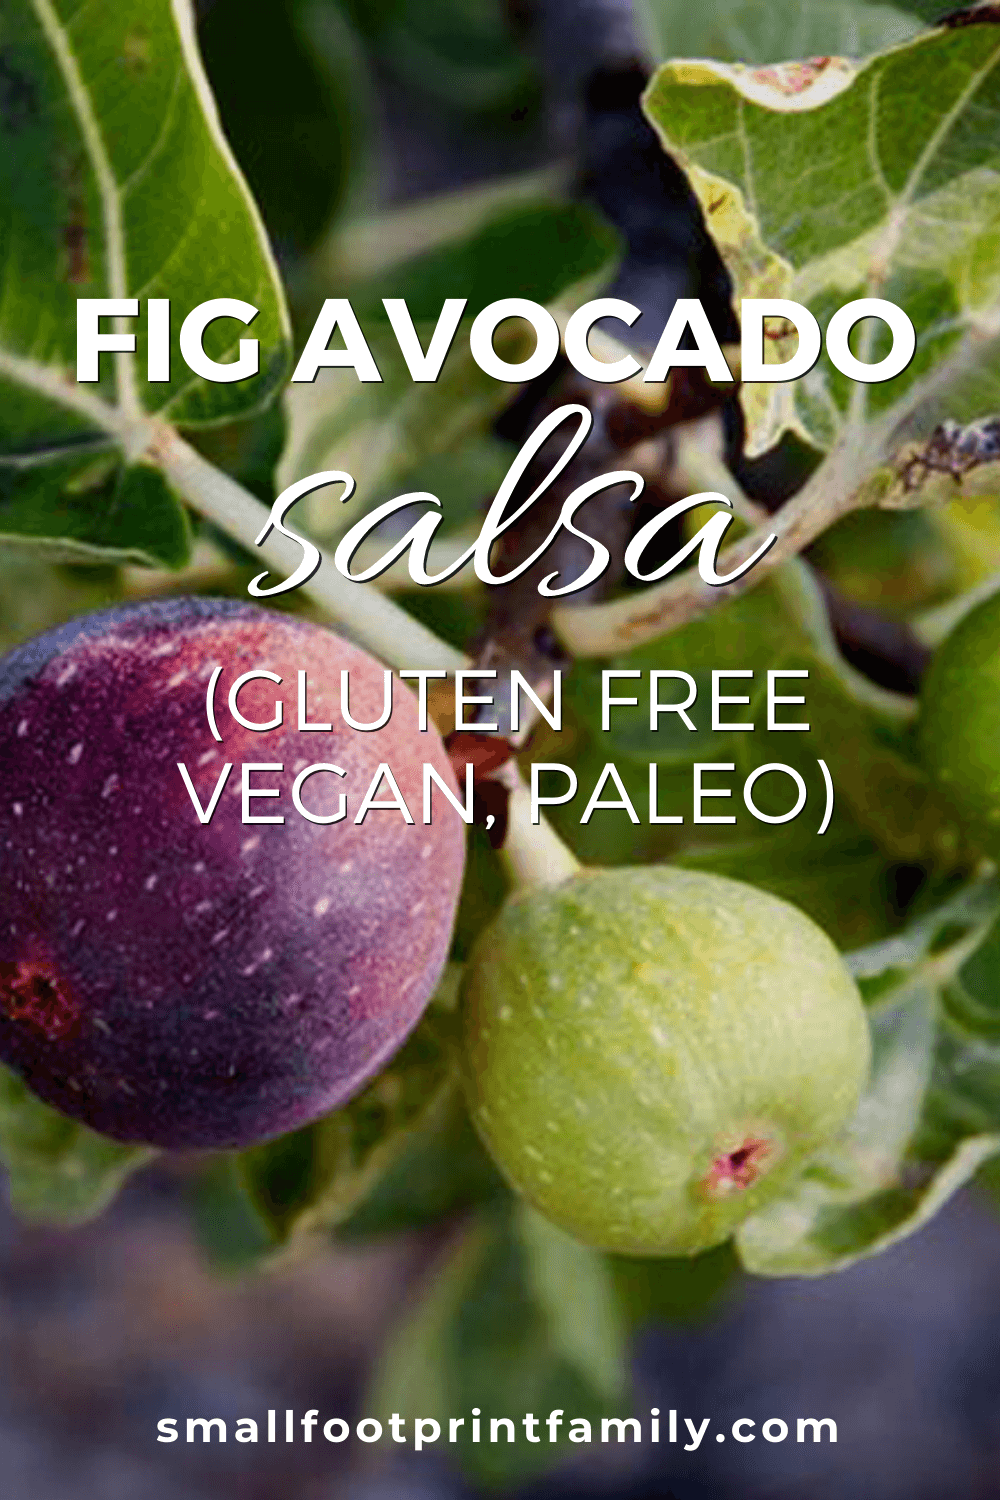 Figs are in season during mid to late summer. This Fig Avocado Salsa is a light refreshing spread perfect for raw veggies, chips, crackers, and sandwiches!#paleo #paleodiet #glutenfree #dairyfree #vegan #vegetarian #rawvegan #recipe #grainfree #realfood #condiment #figs